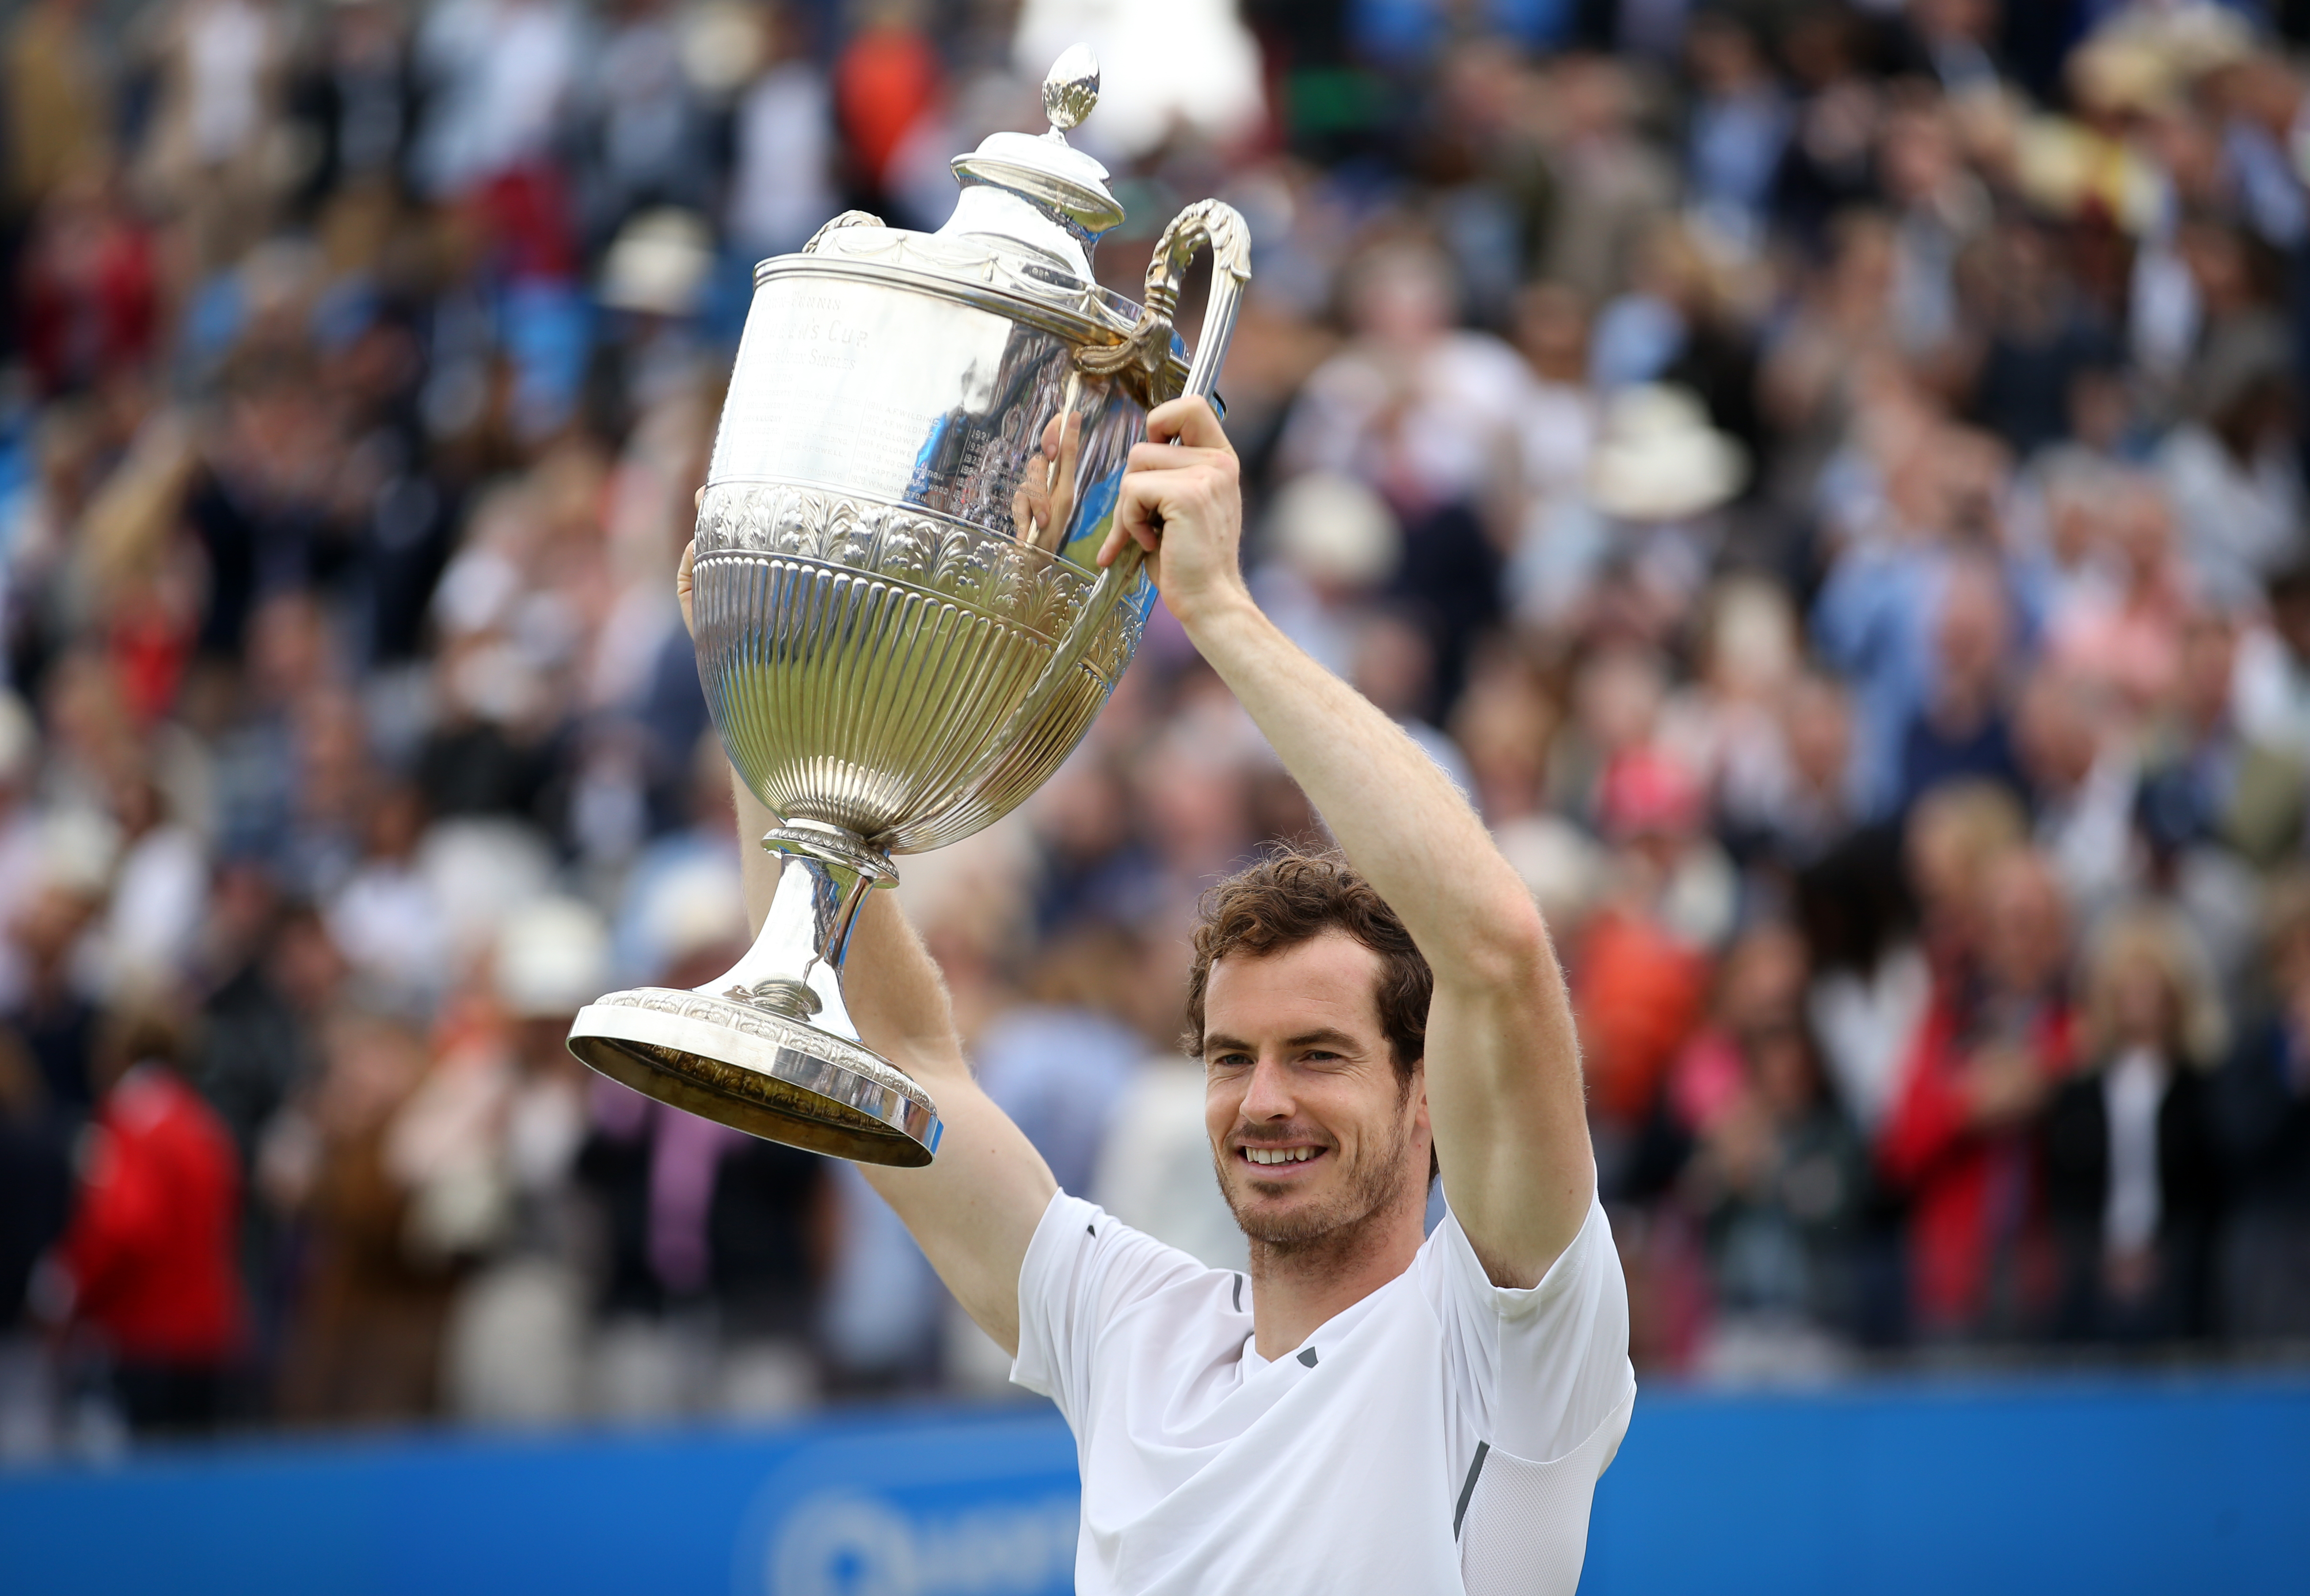 Murray has won at Queen's Club five times on his own. Image: PA Images